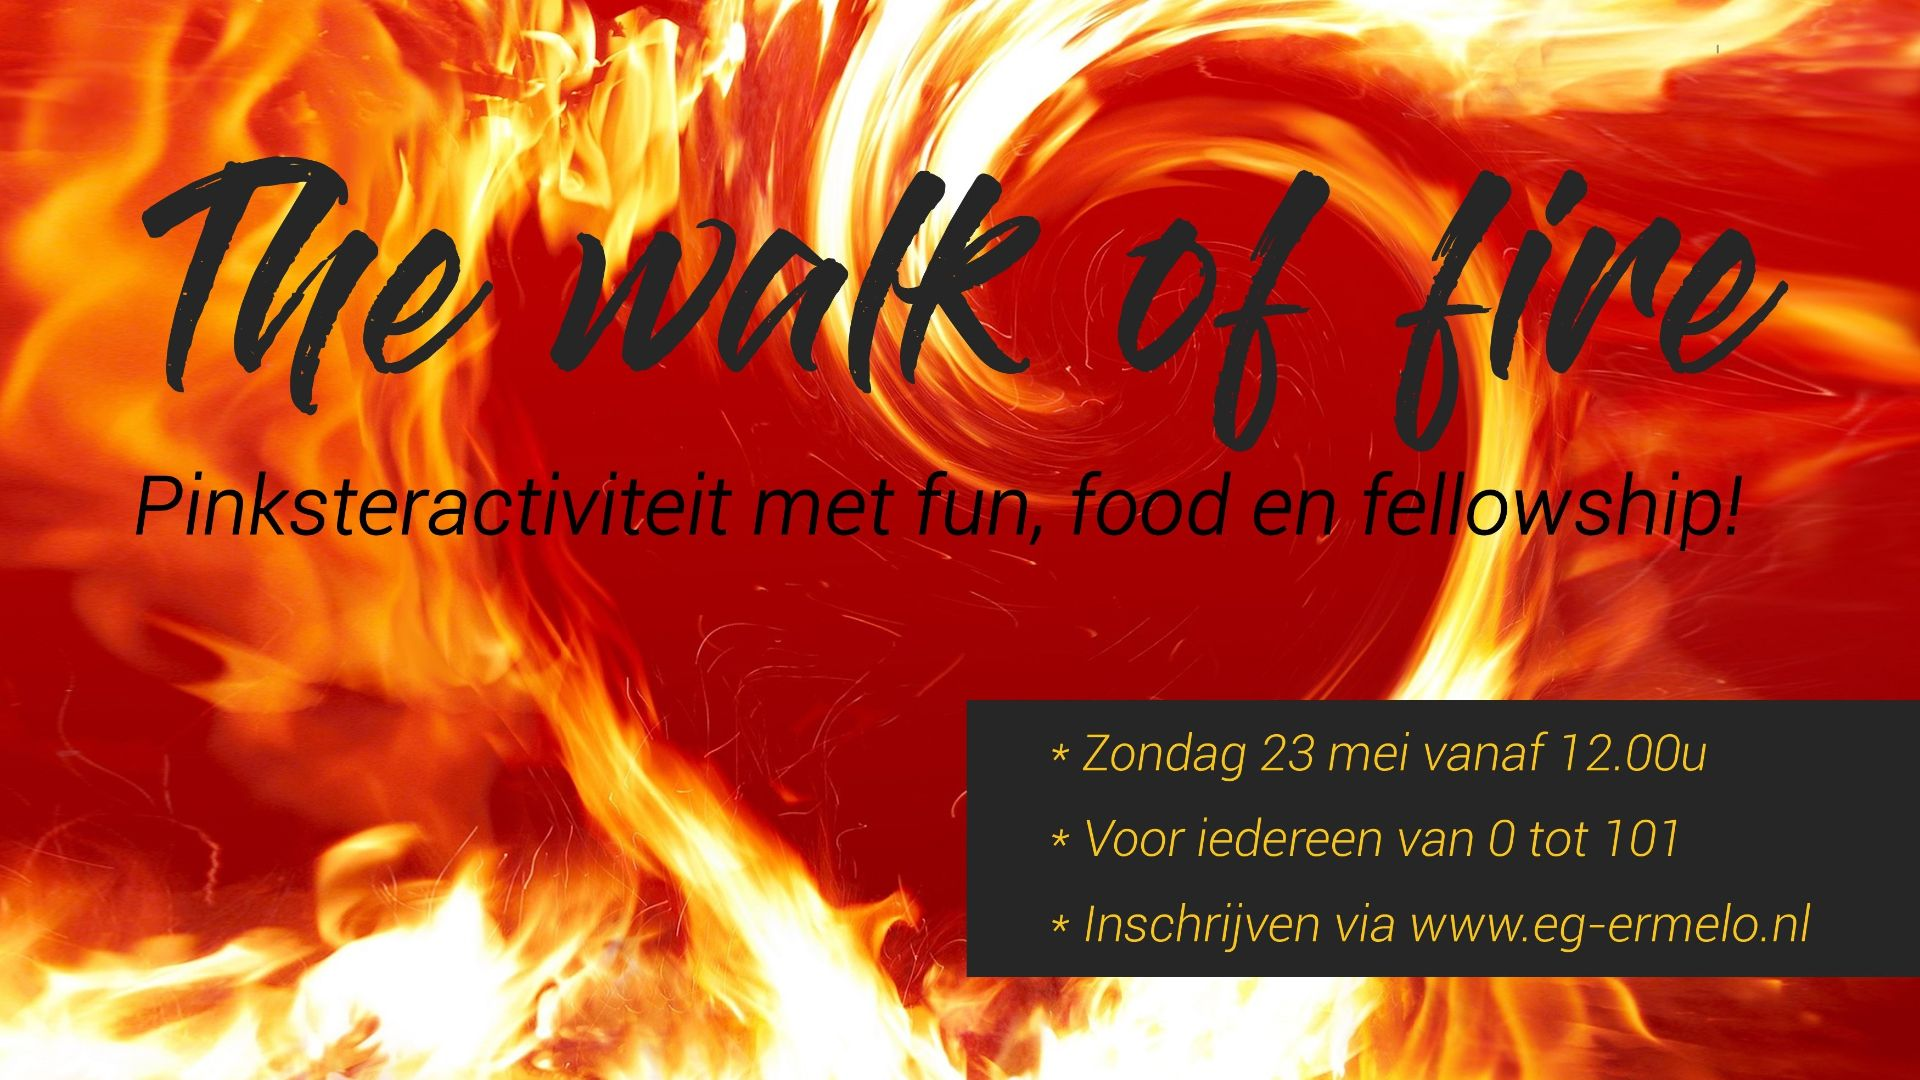 The walk of fire